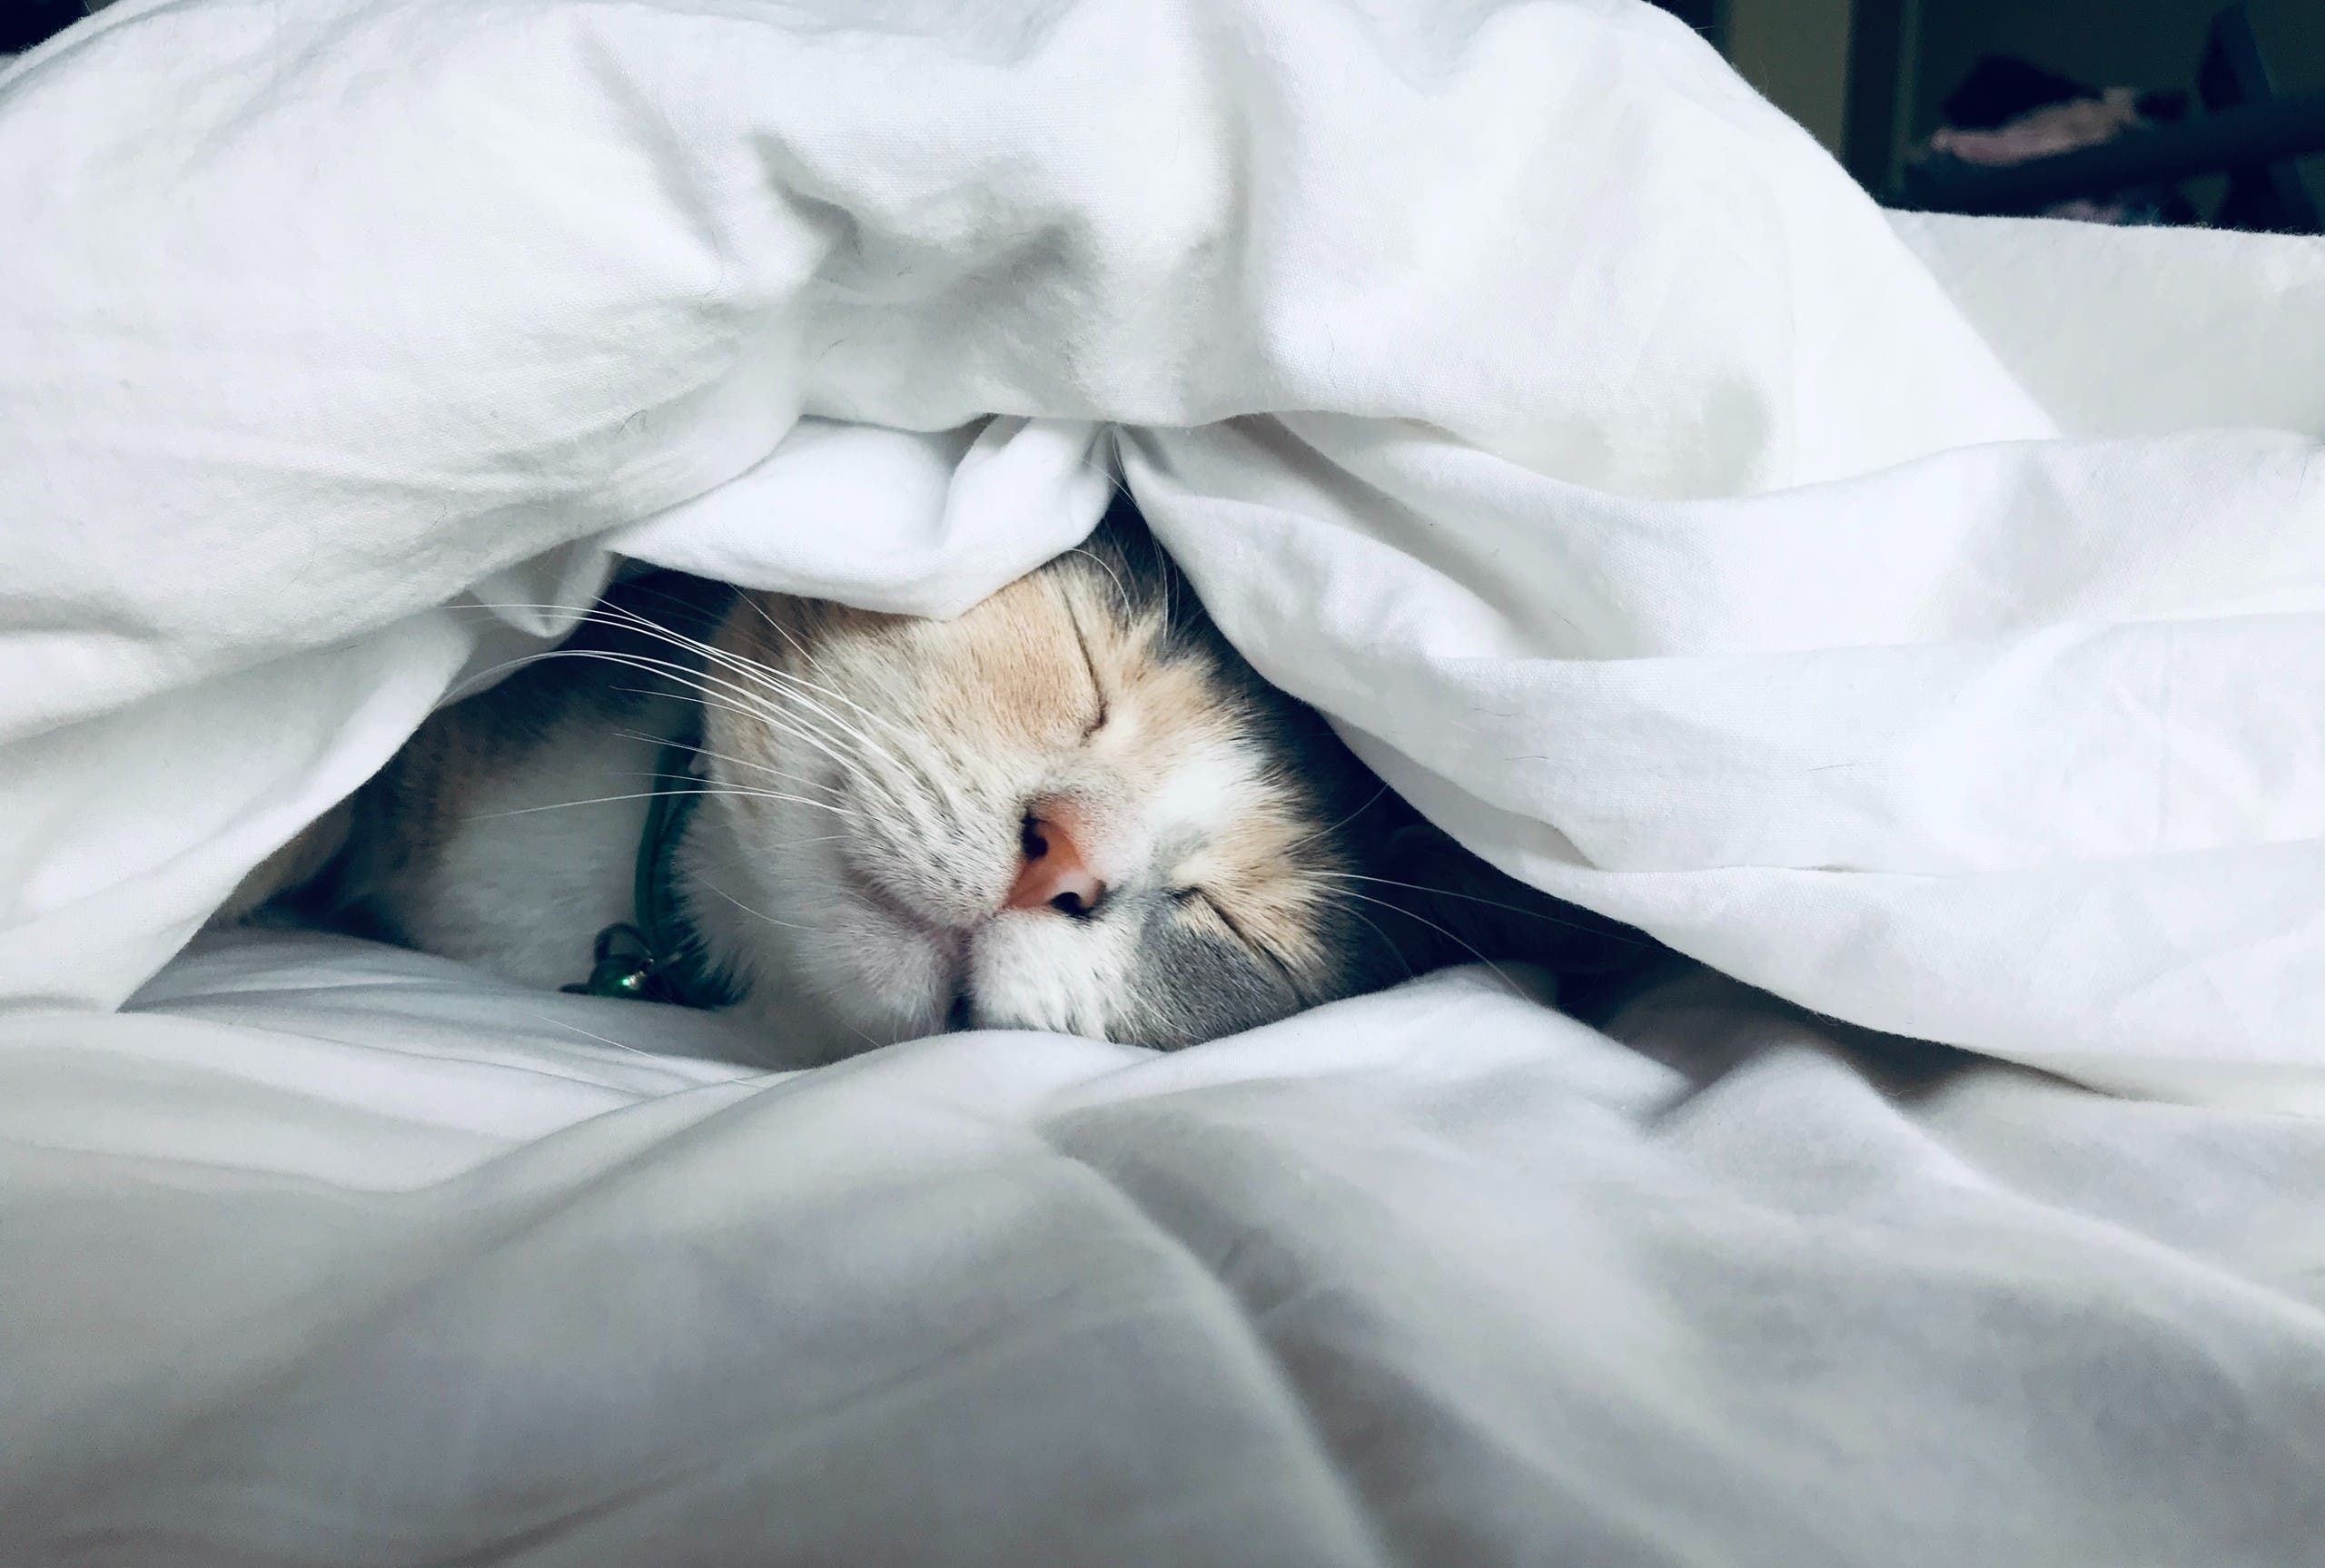 A sleeping cat is pictured. (Unsplash, Kate Stone Matheson)